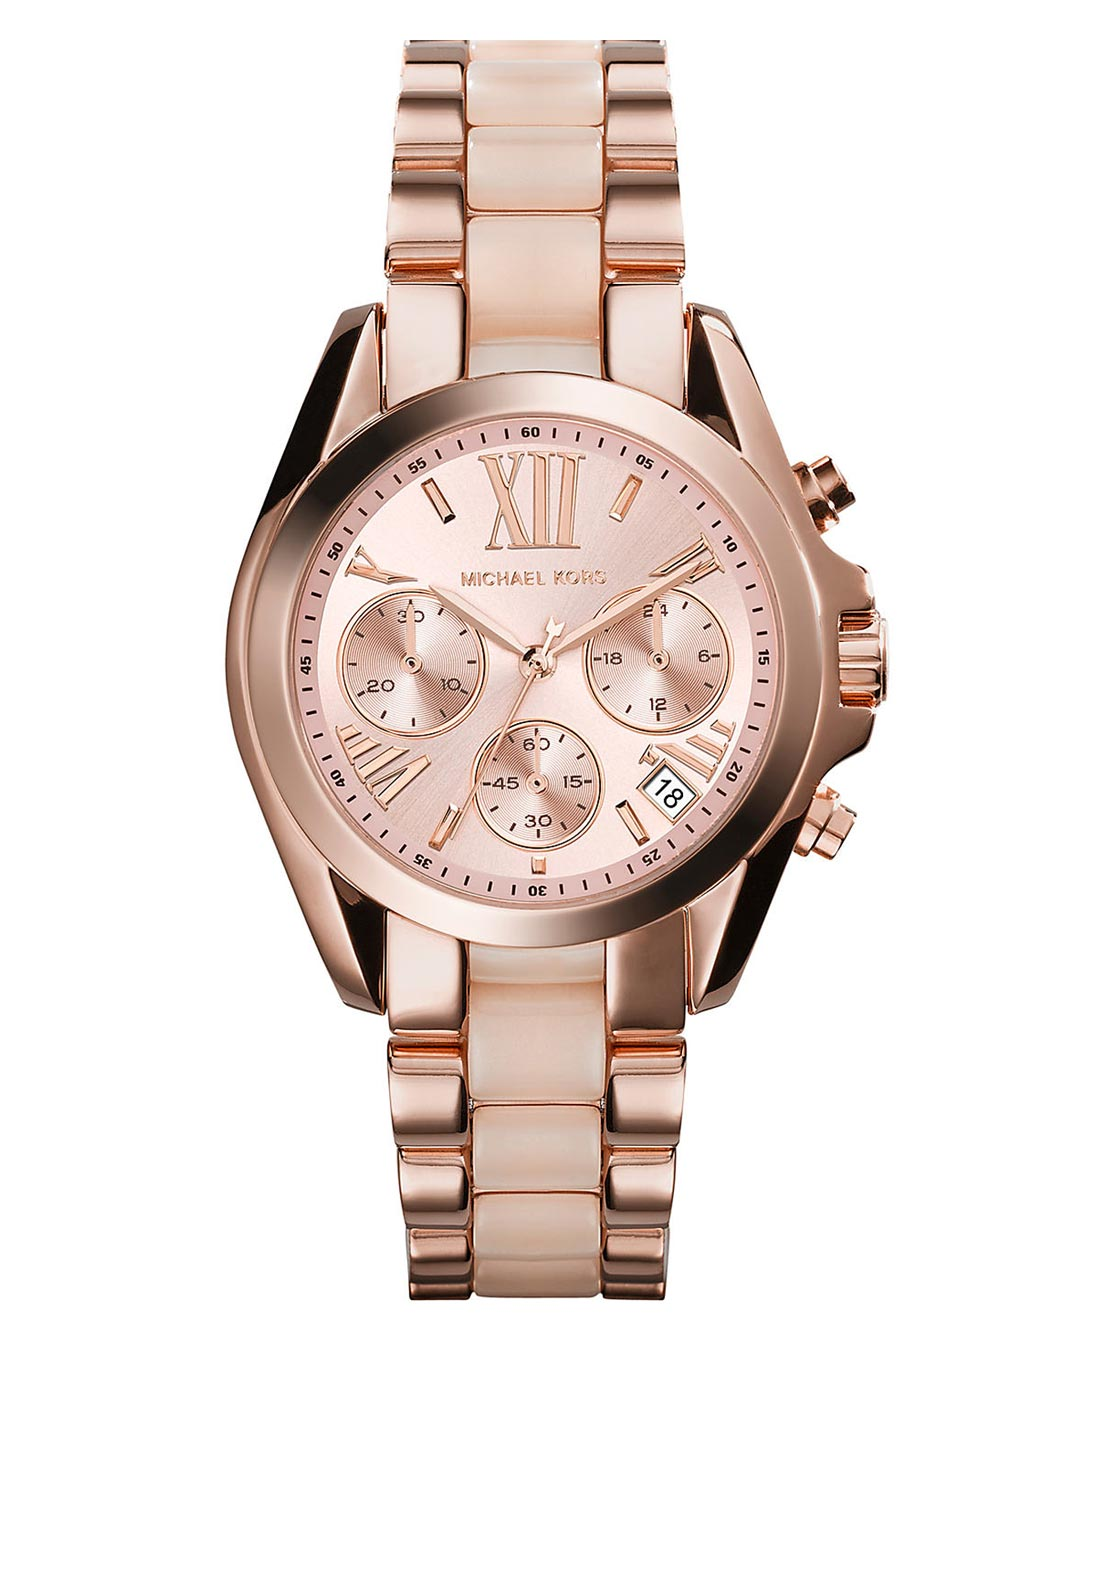 Michael Kors Womens Bradshaw Watch, Rose Gold